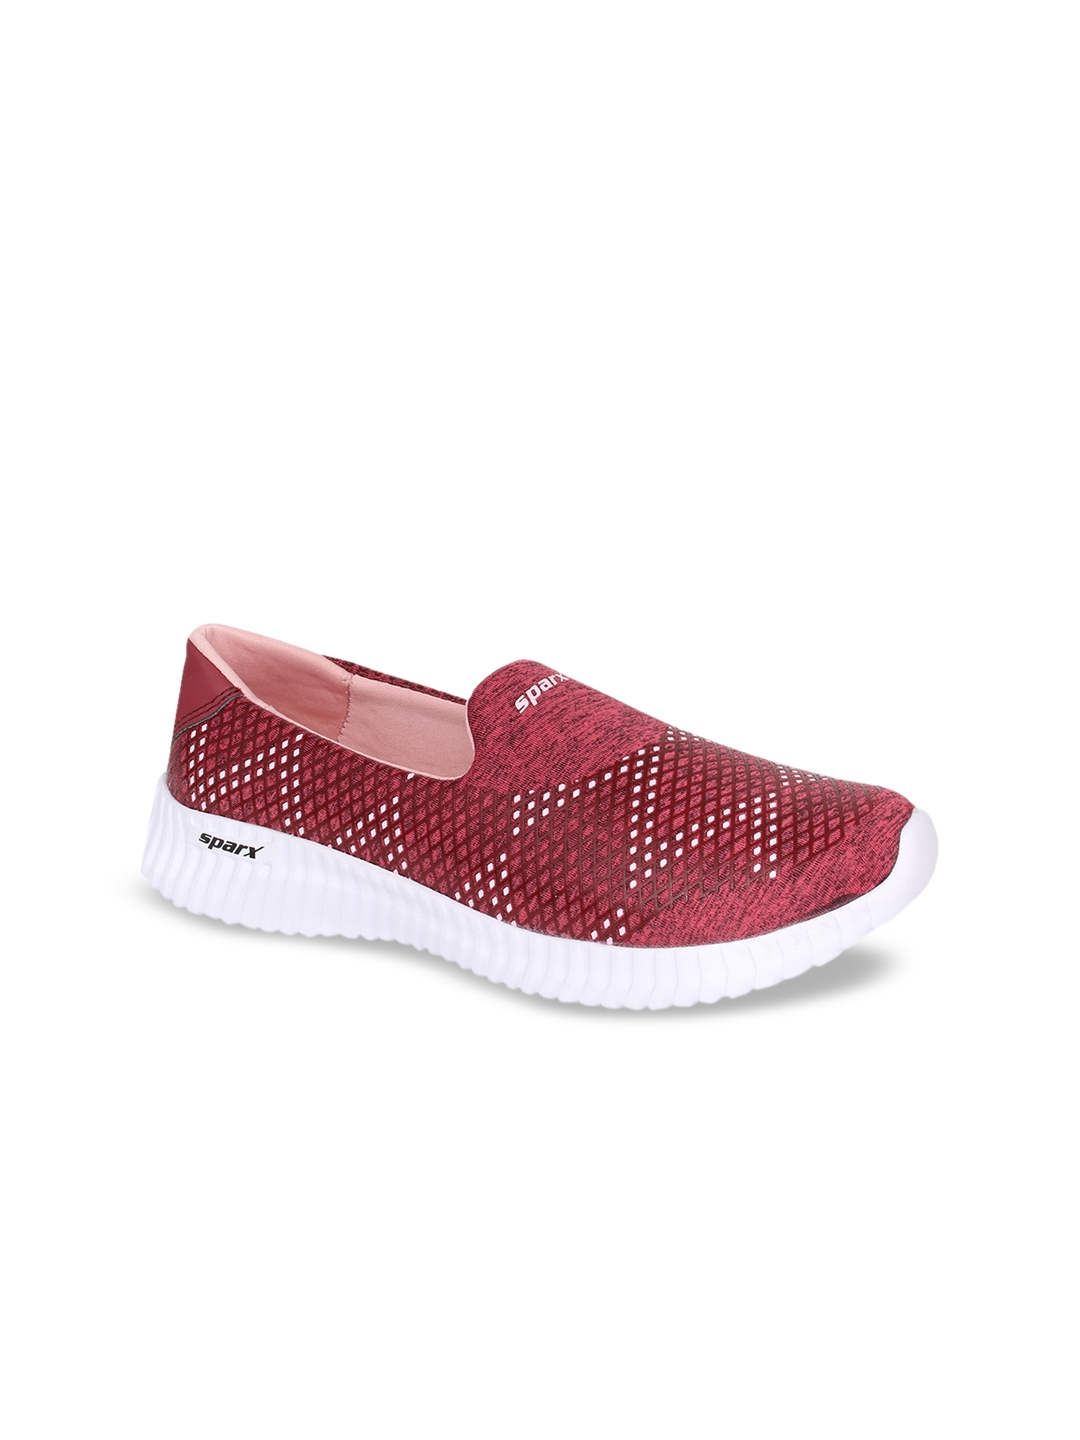 Sparx Women Maroon Canvas Running Shoes